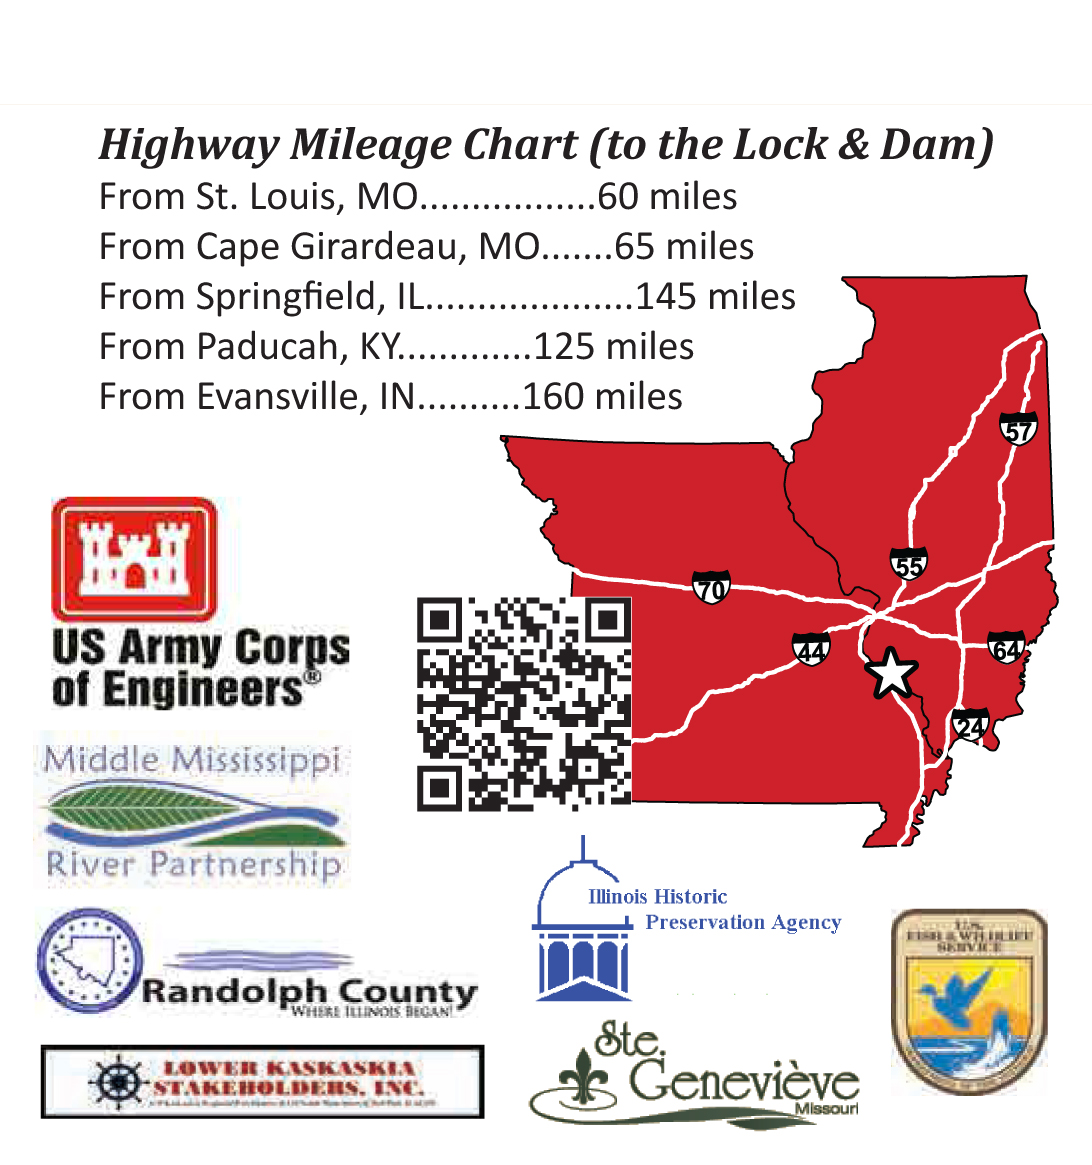 Highway Mileage Chart